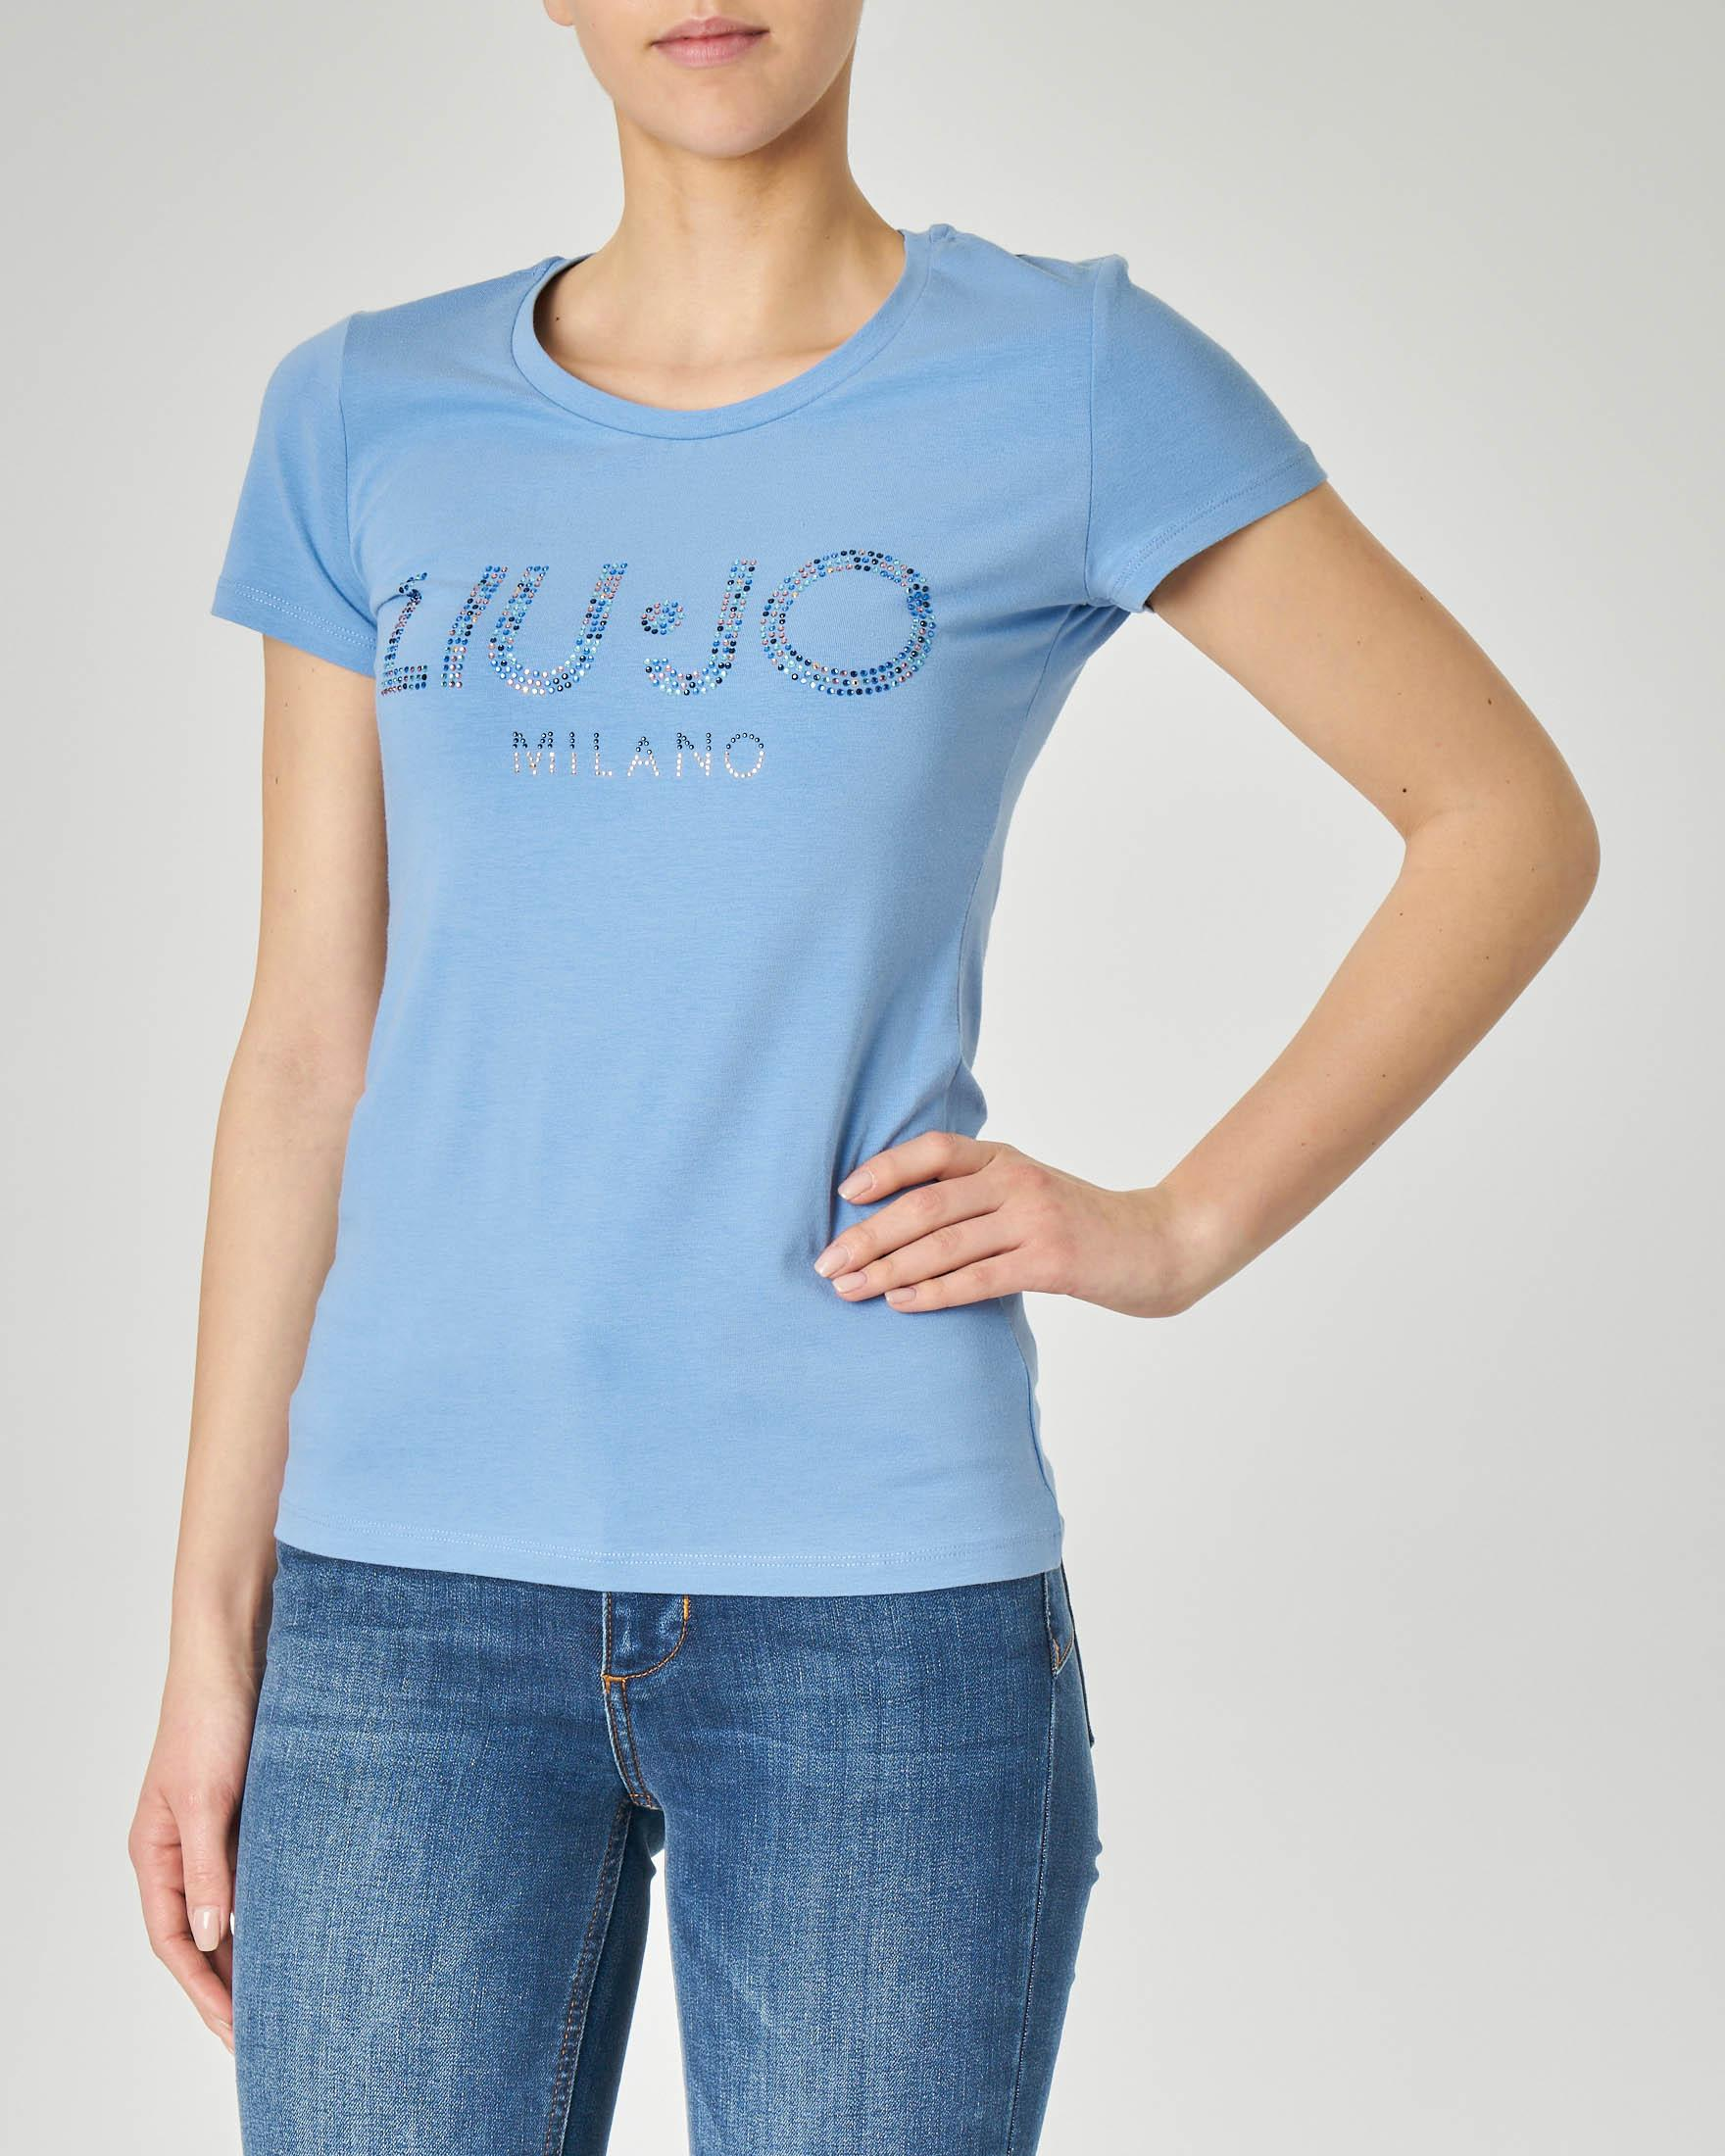 T-shirt azzurra maniche corte con logo in strass applicati